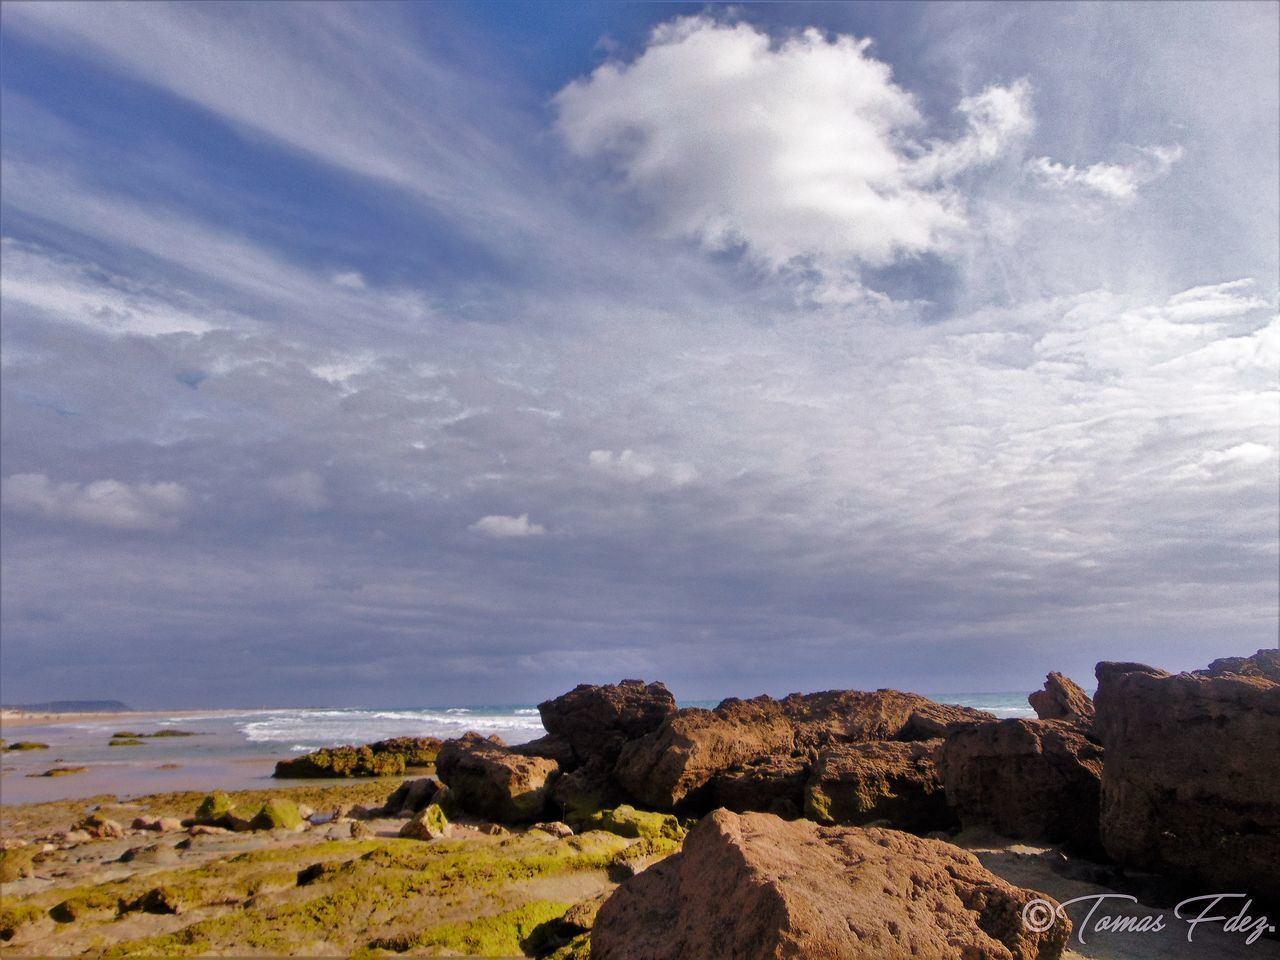 nature, sky, cloud - sky, scenics, rock - object, tranquil scene, tranquility, beauty in nature, landscape, no people, day, outdoors, water